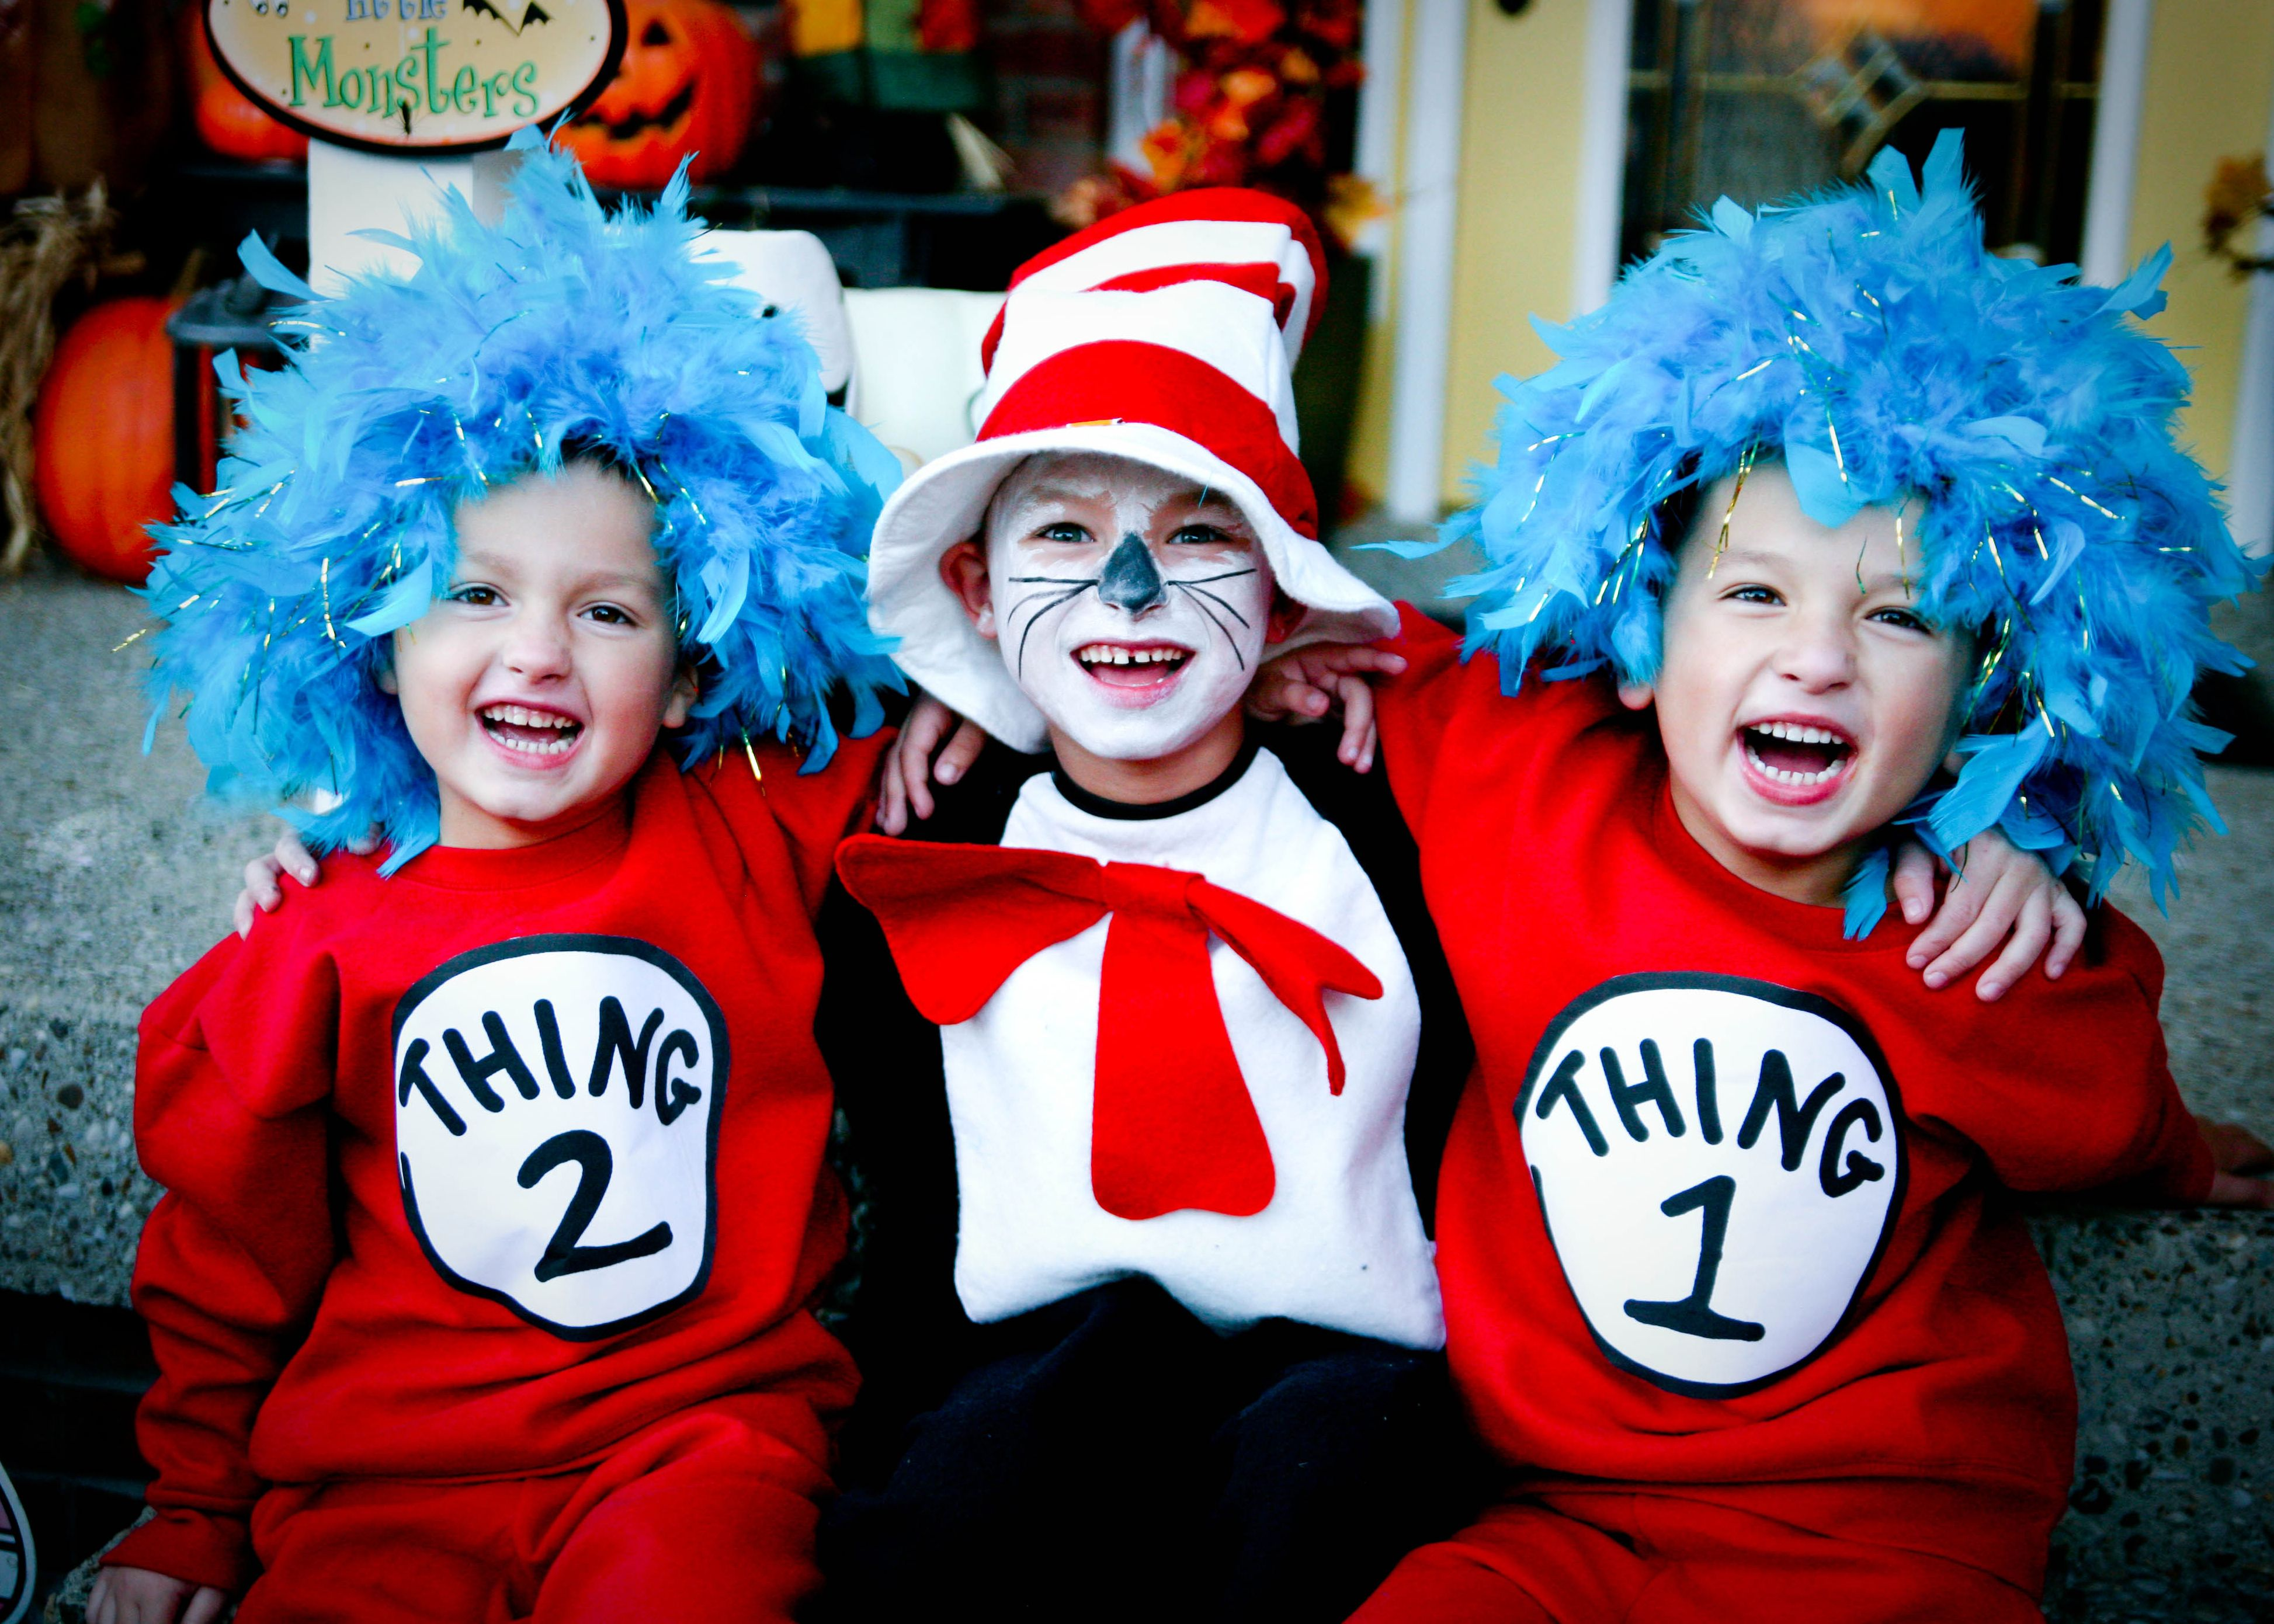 Diy Cat In The Hat Theme Costumes Thing One And Thing Two 1 Amp 2 Dr Suess Simple Easy To